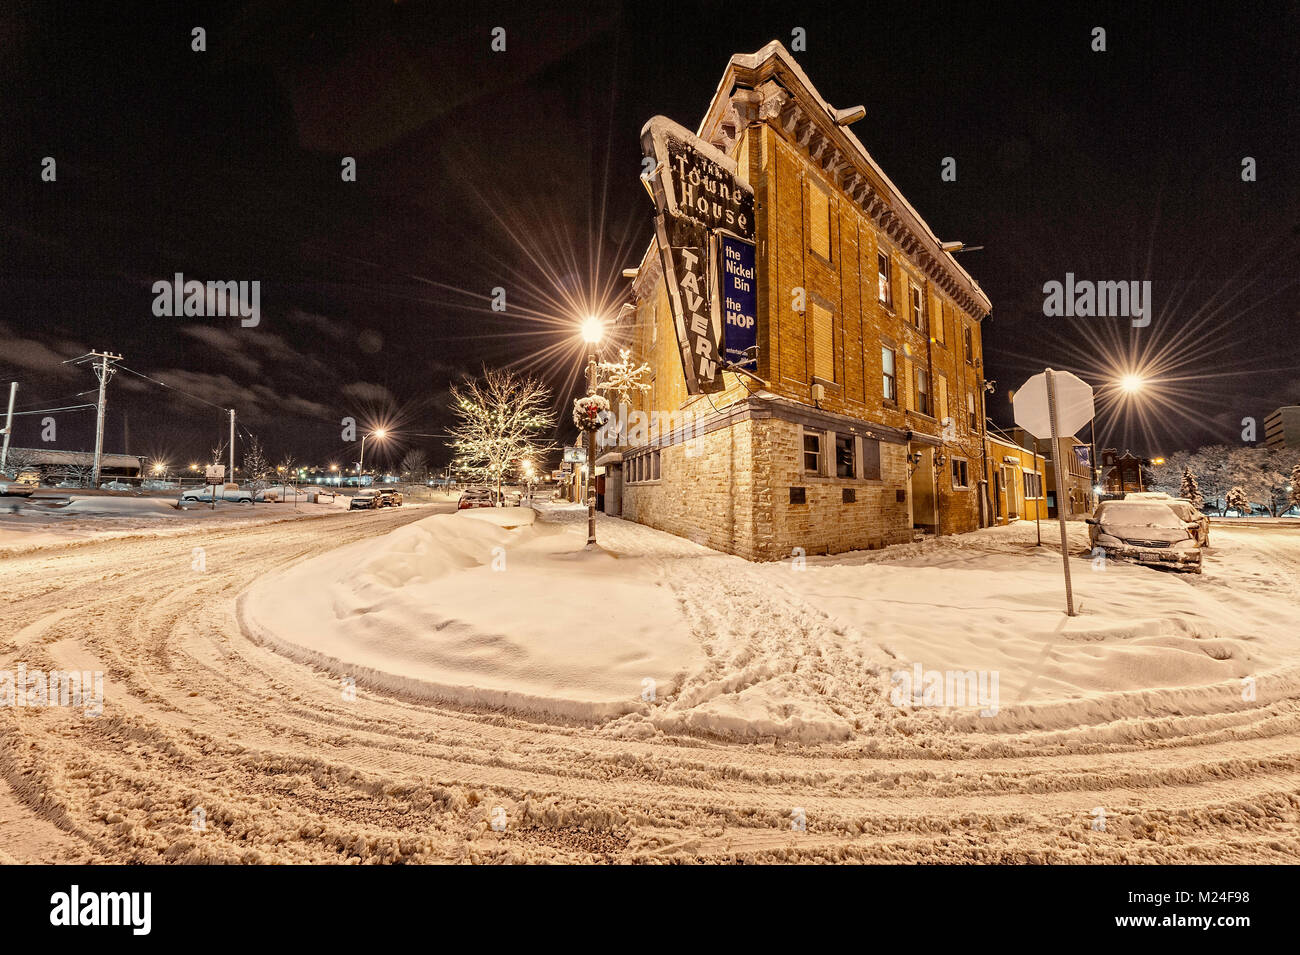 The historic townhouse hotel in downtown sudbury on a winter night - Stock Image